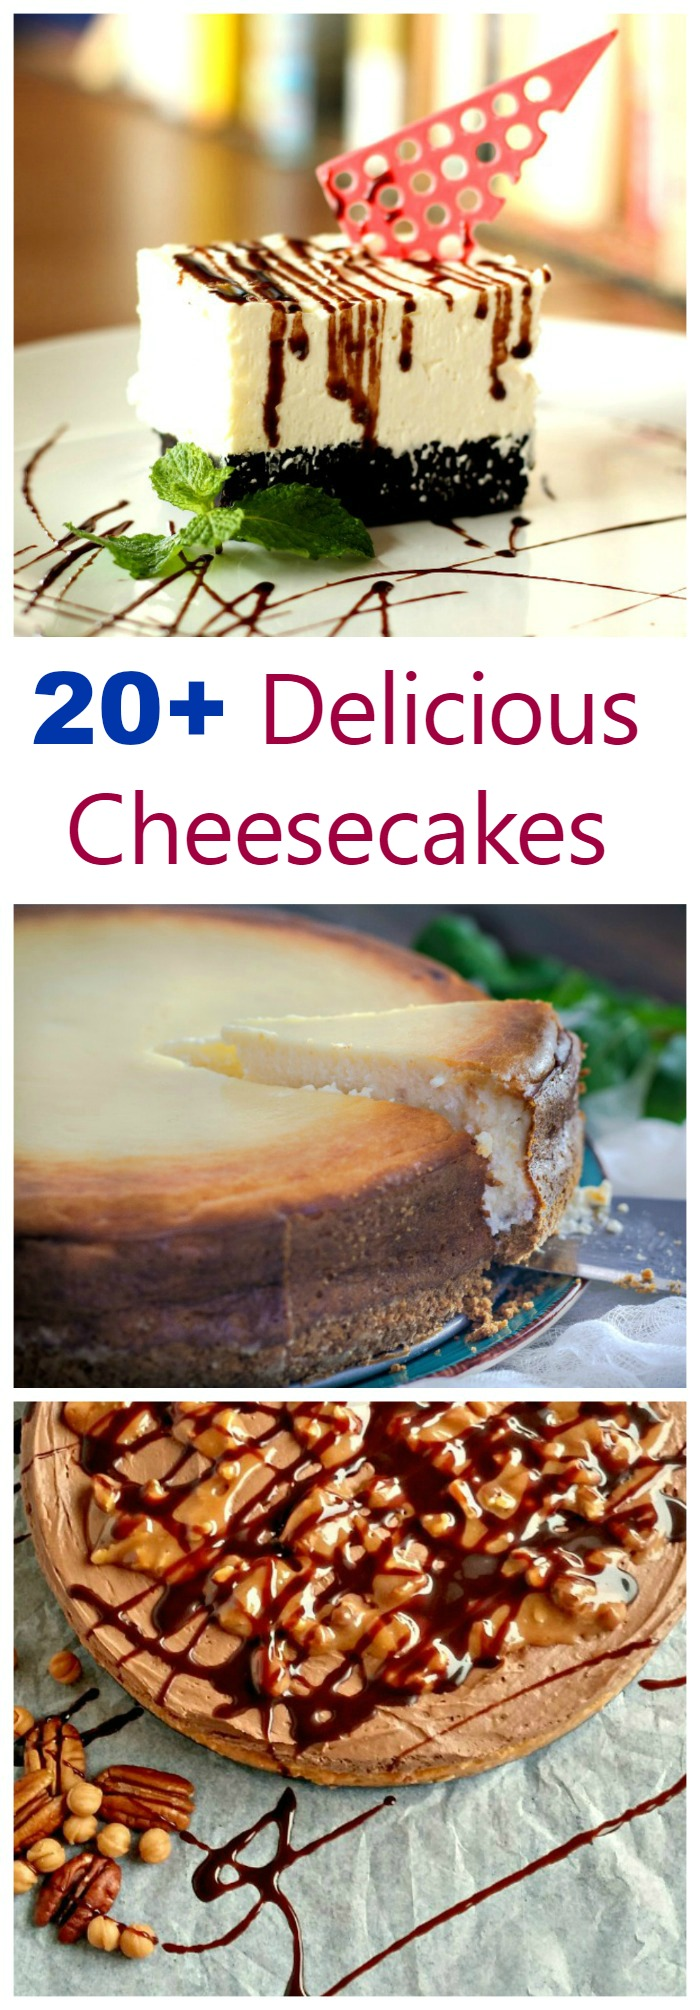 Do you love cheesecakes? So do I. I have a collection of over 20 fabulous cheesecake recipes to tempt you. Everything from bars, to muffins to dips and more are included.